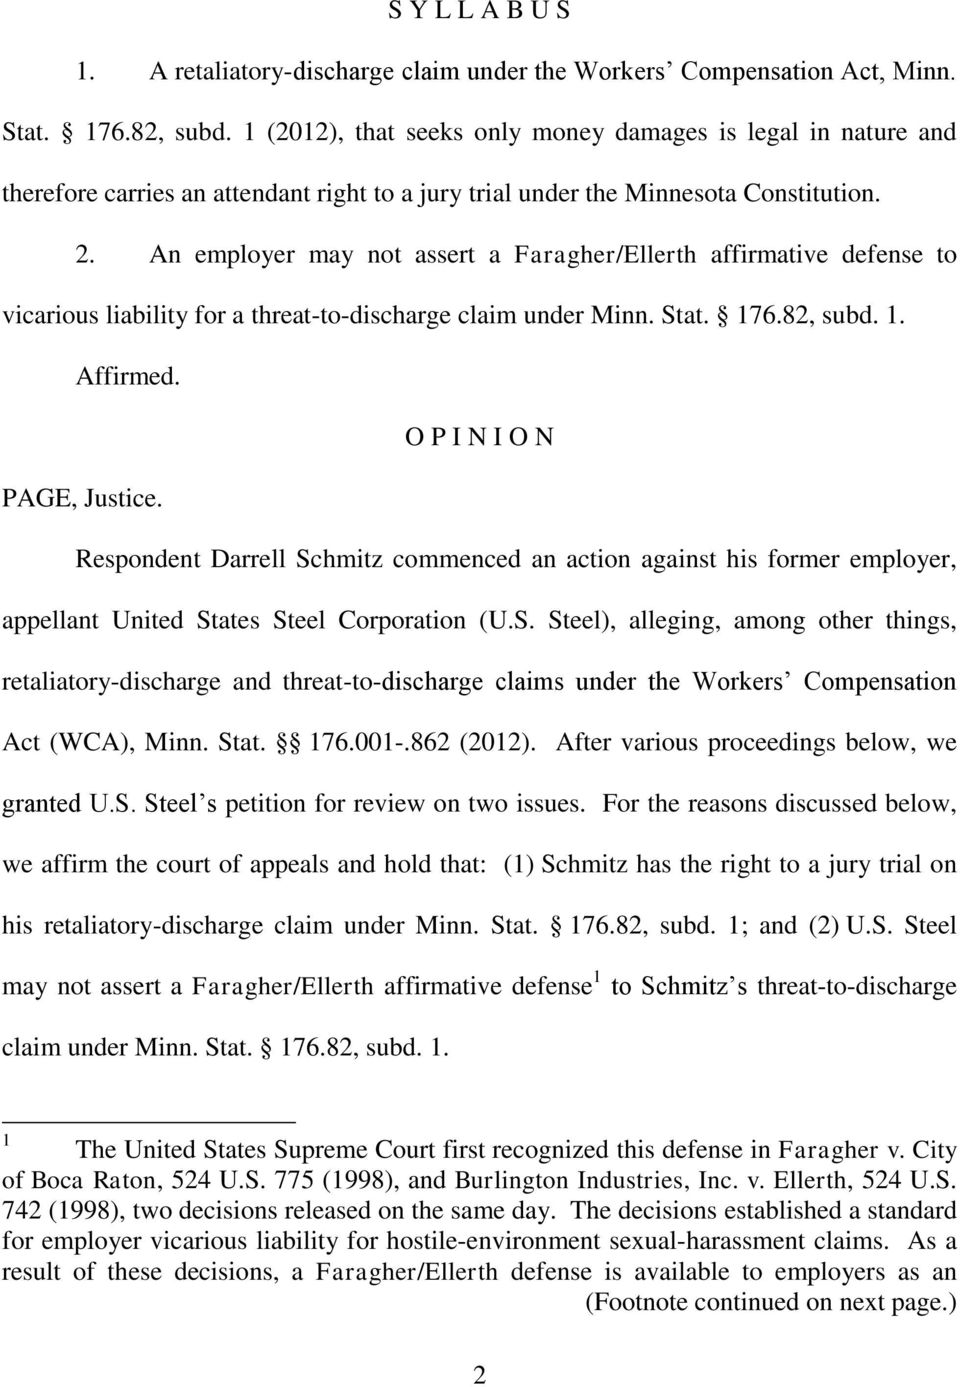 An employer may not assert a Faragher/Ellerth affirmative defense to vicarious liability for a threat-to-discharge claim under Minn. Stat. 176.82, subd. 1. Affirmed. O P I N I O N PAGE, Justice.